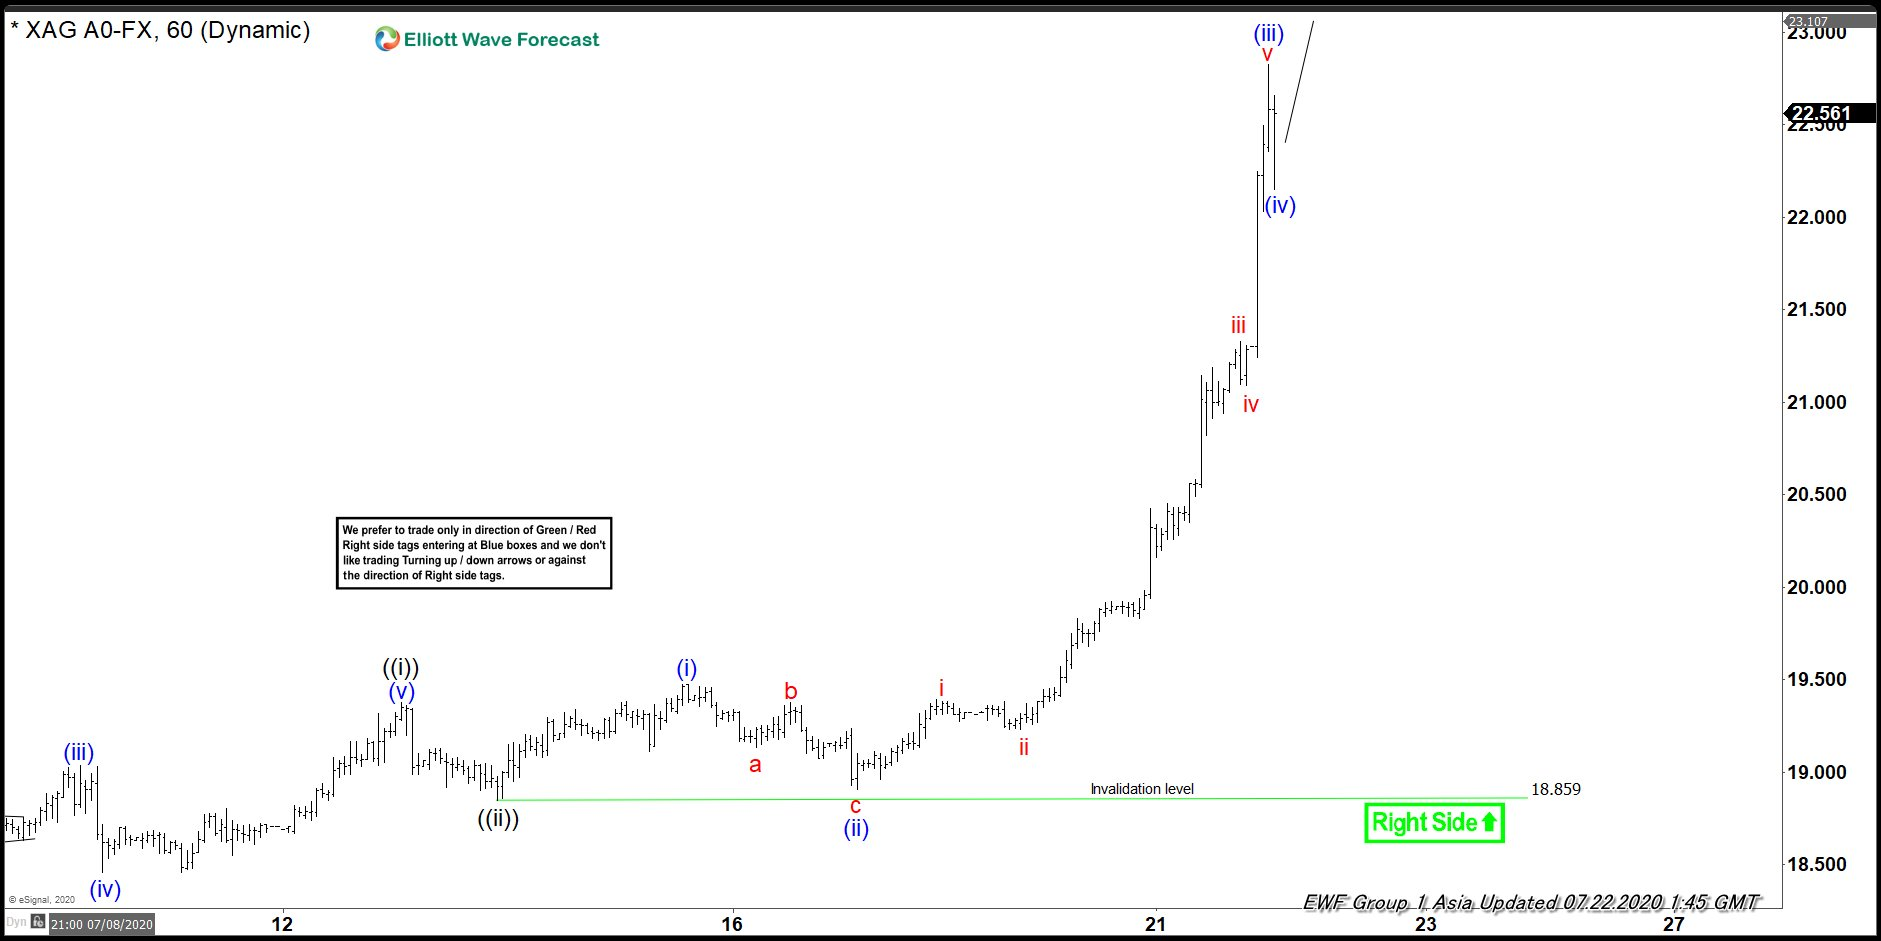 Elliott Wave View: Silver Has Room for More Upside